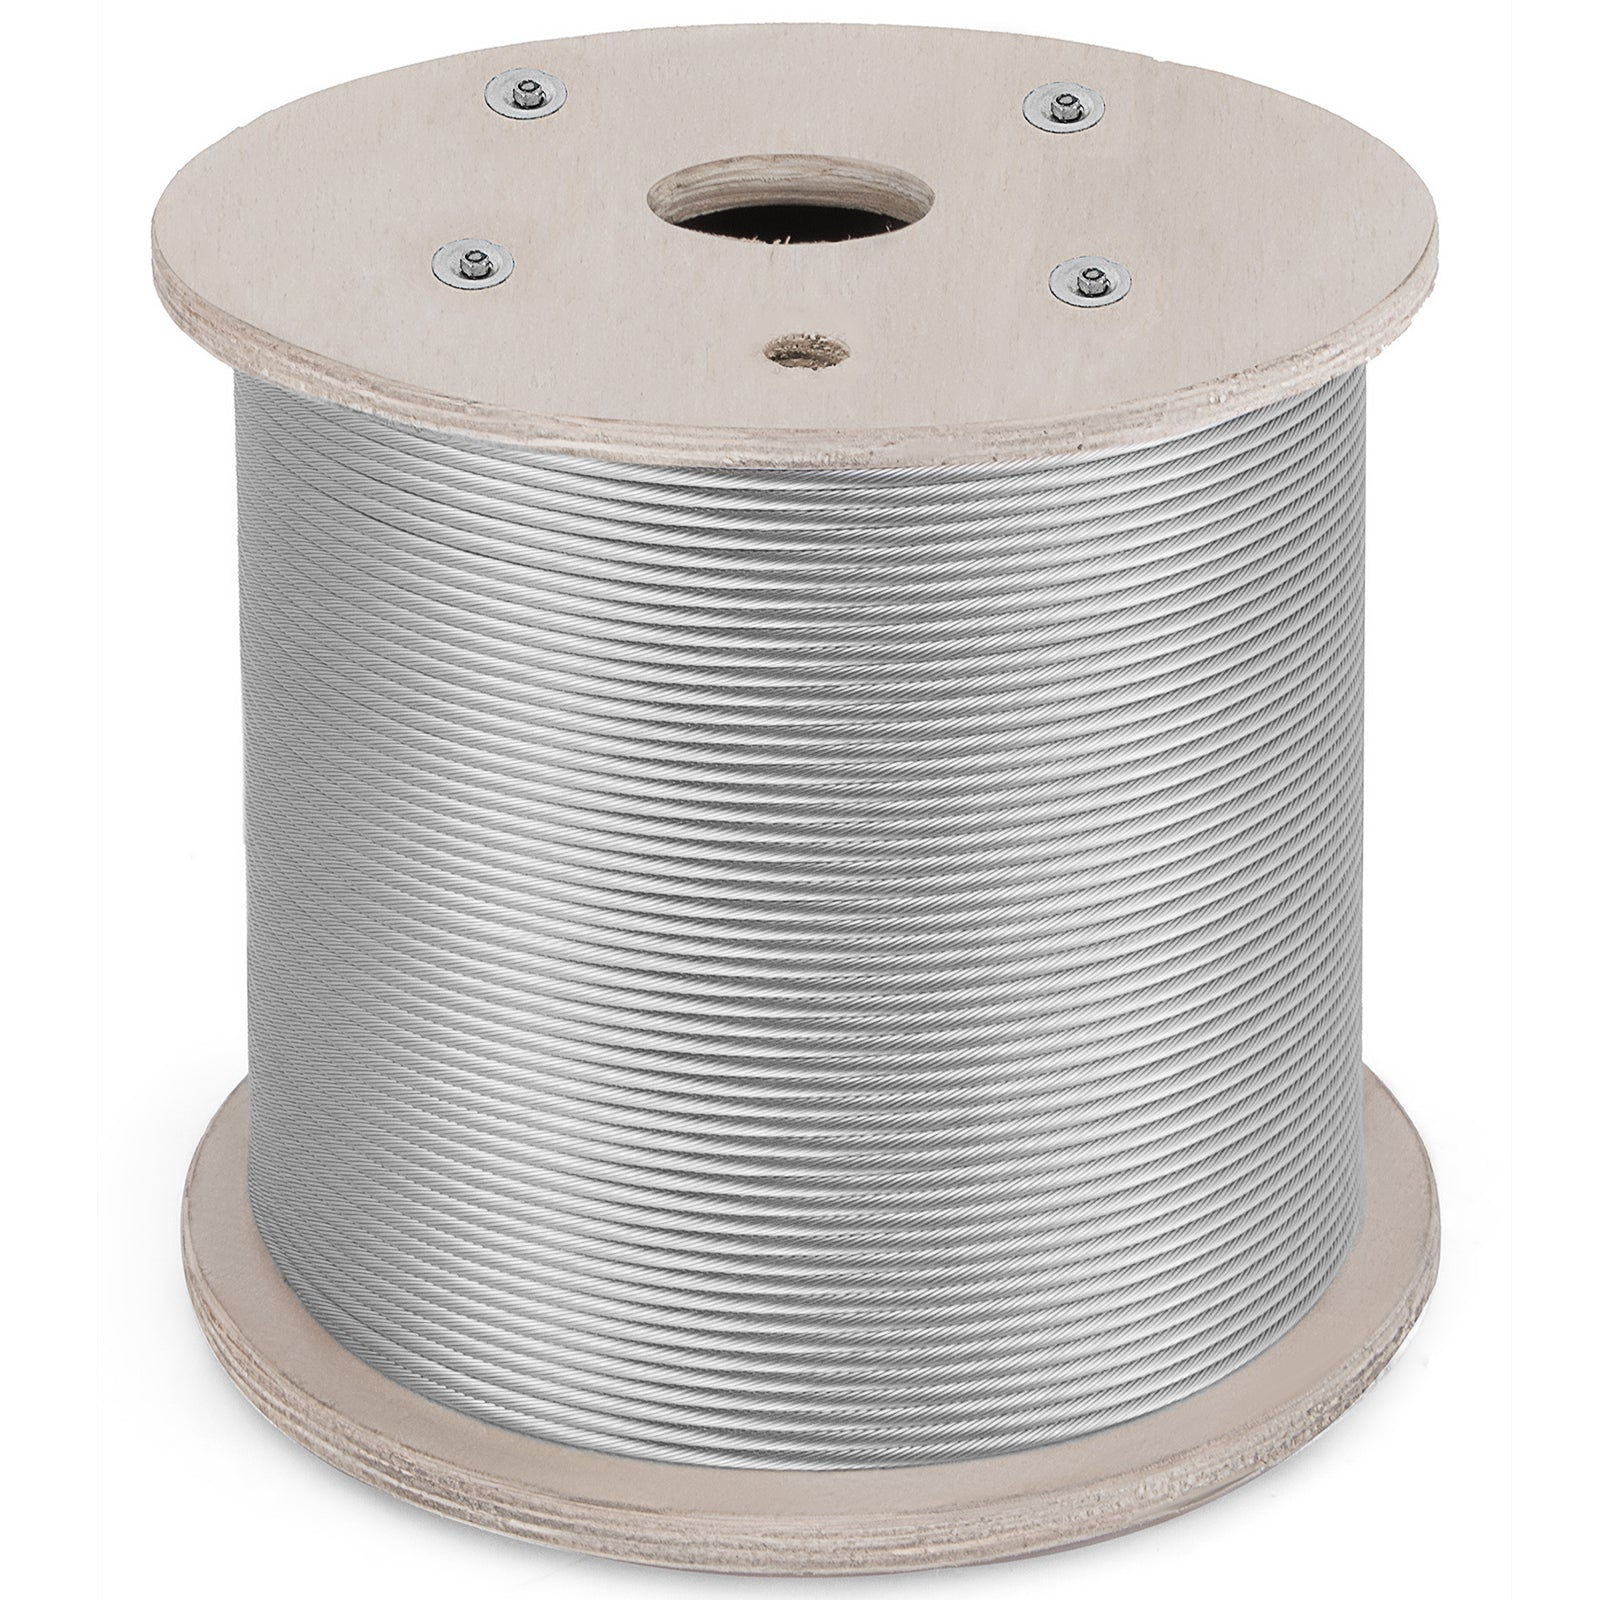 "T316 Stainless Steel Cable Wire Rope,1/8"",7x7,400ft Lifting Aircraft Machinery"